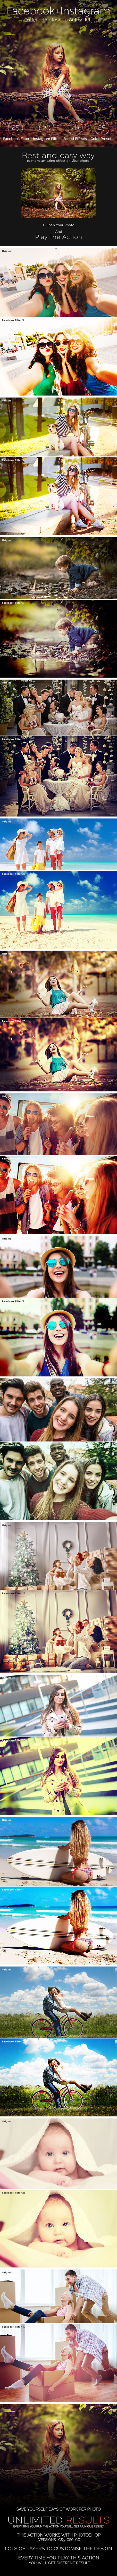 Facebook+Instagram Filter - Photoshop Action Kit - Photo Effects Actions